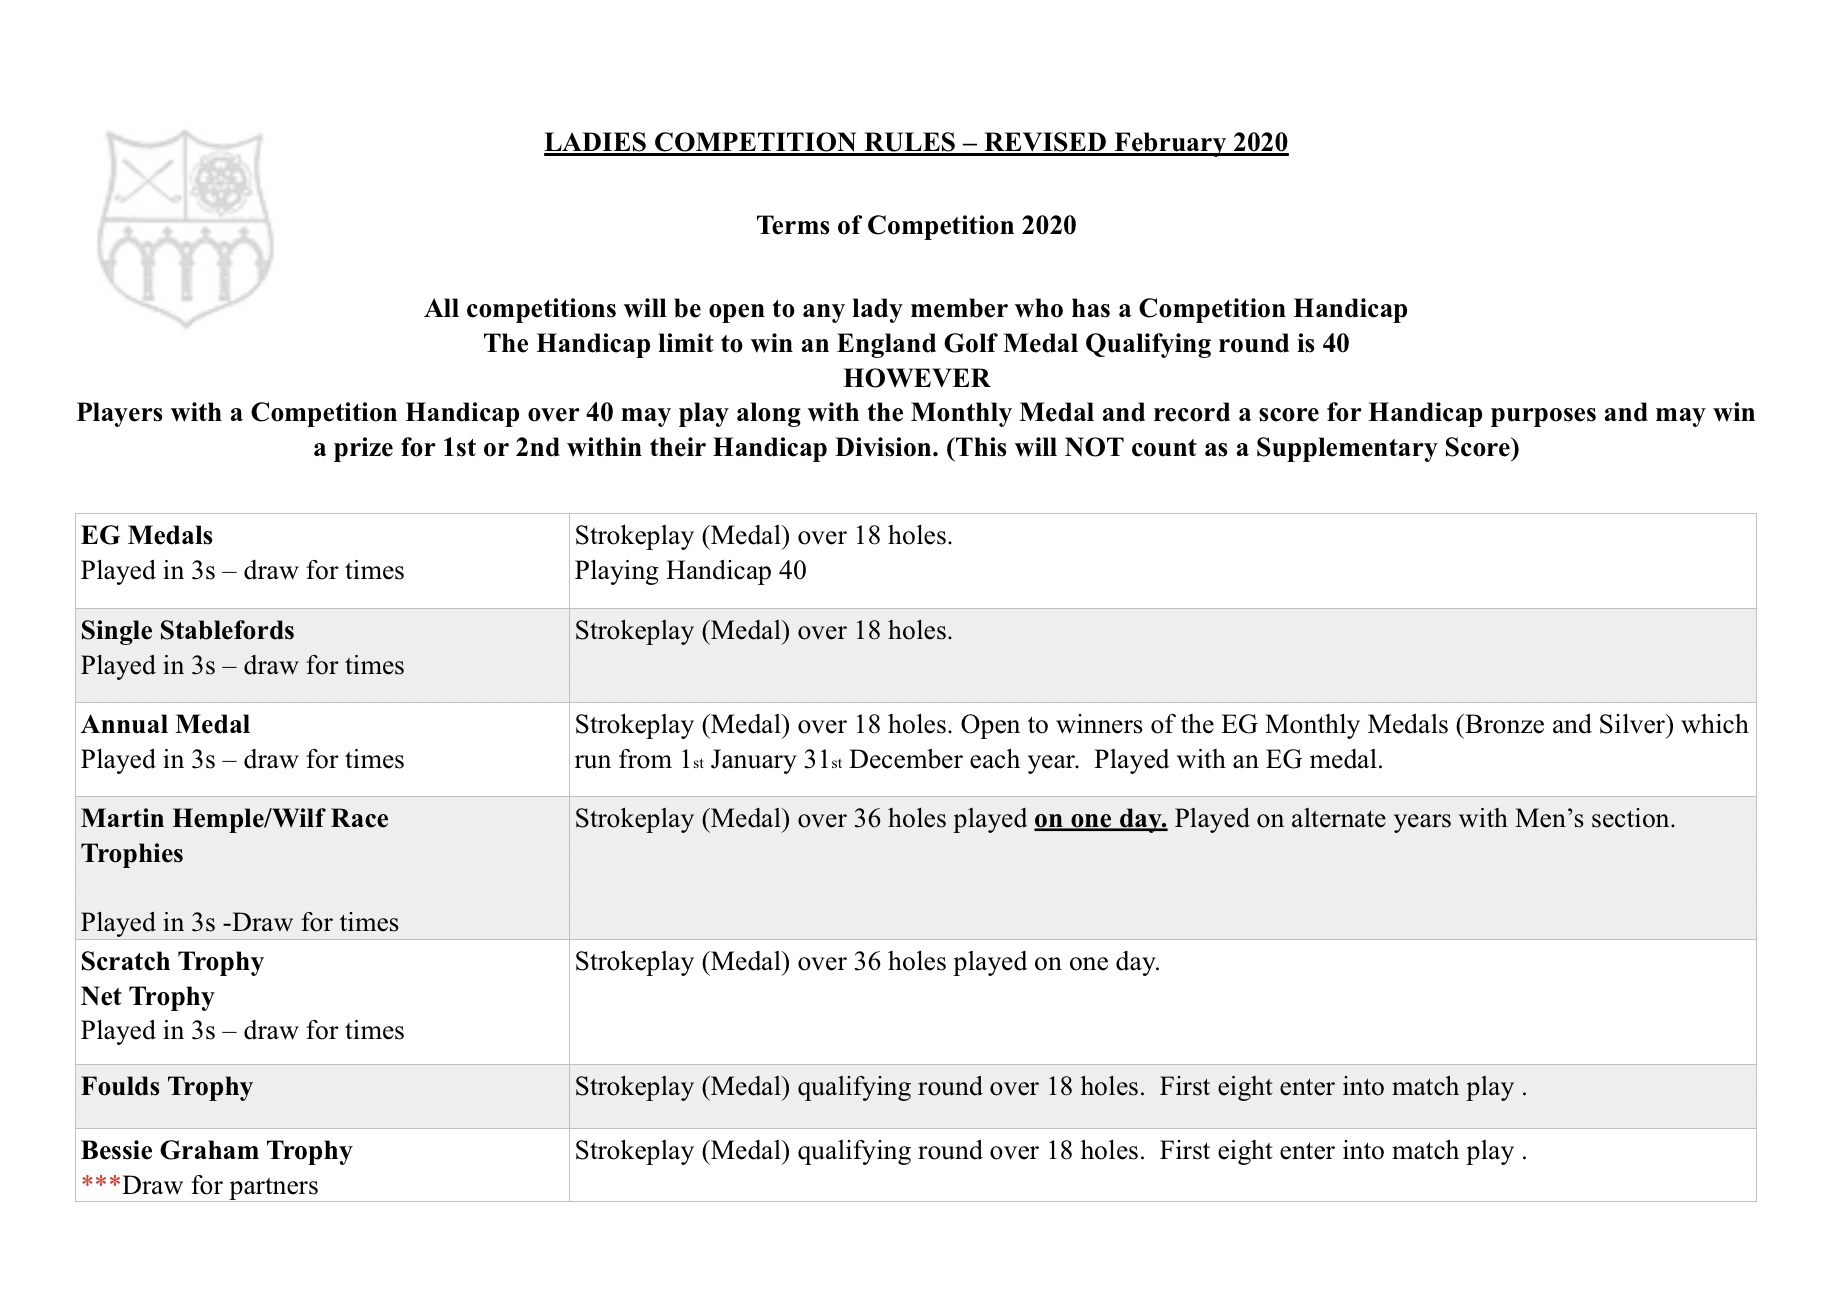 Ladies Competition Rules 1